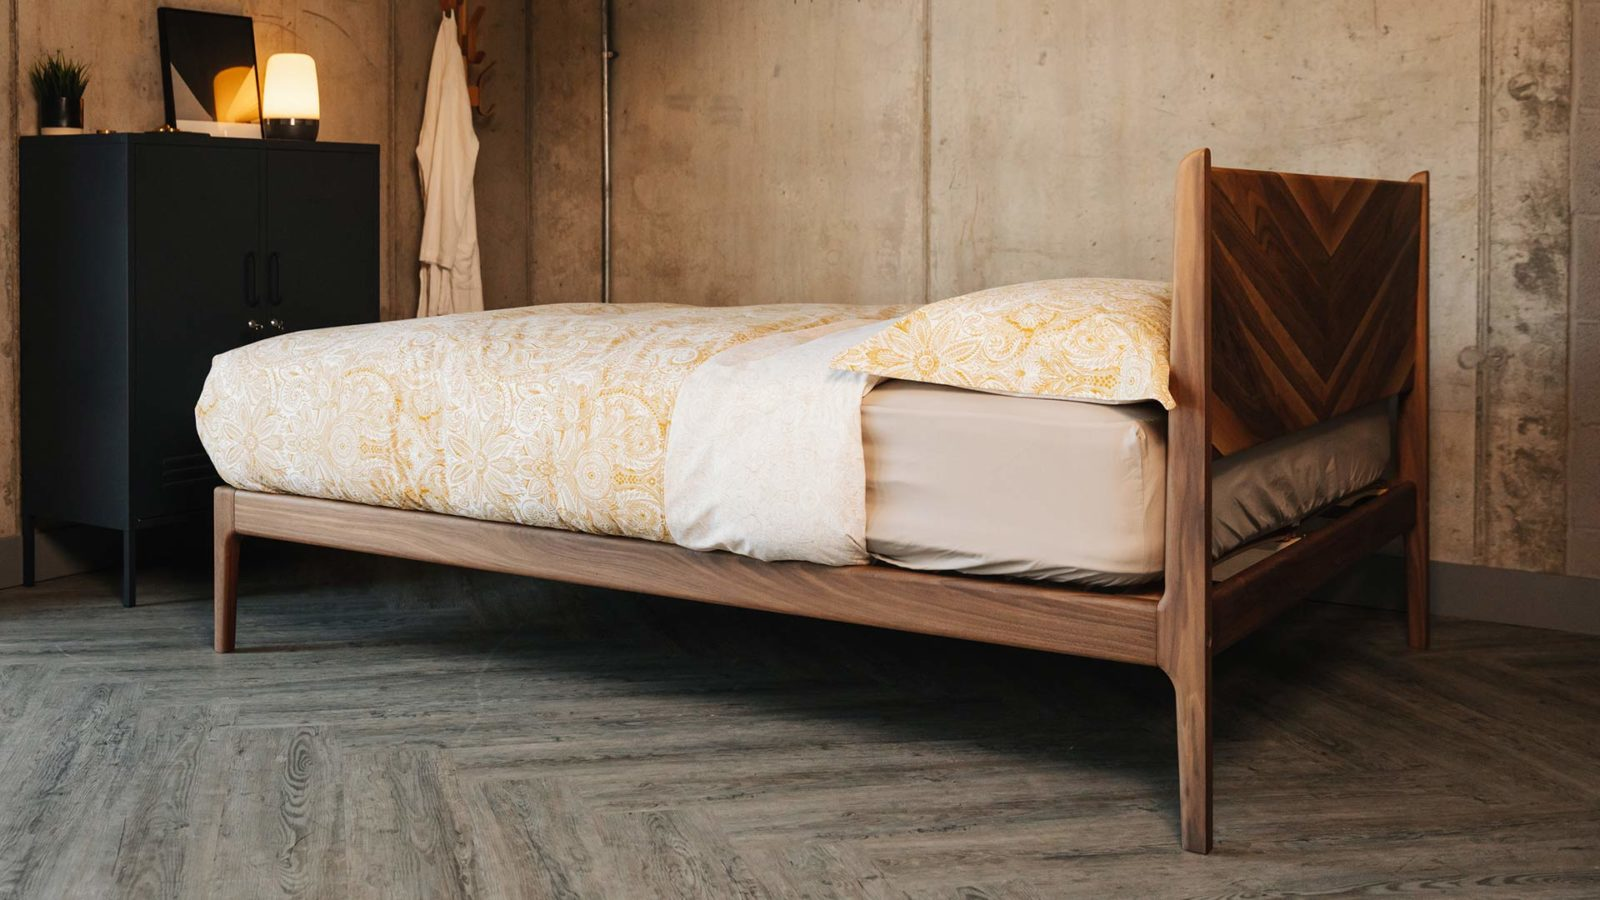 view showing the reverse of the chevron patterned hand crafted Hoxton bed headboard